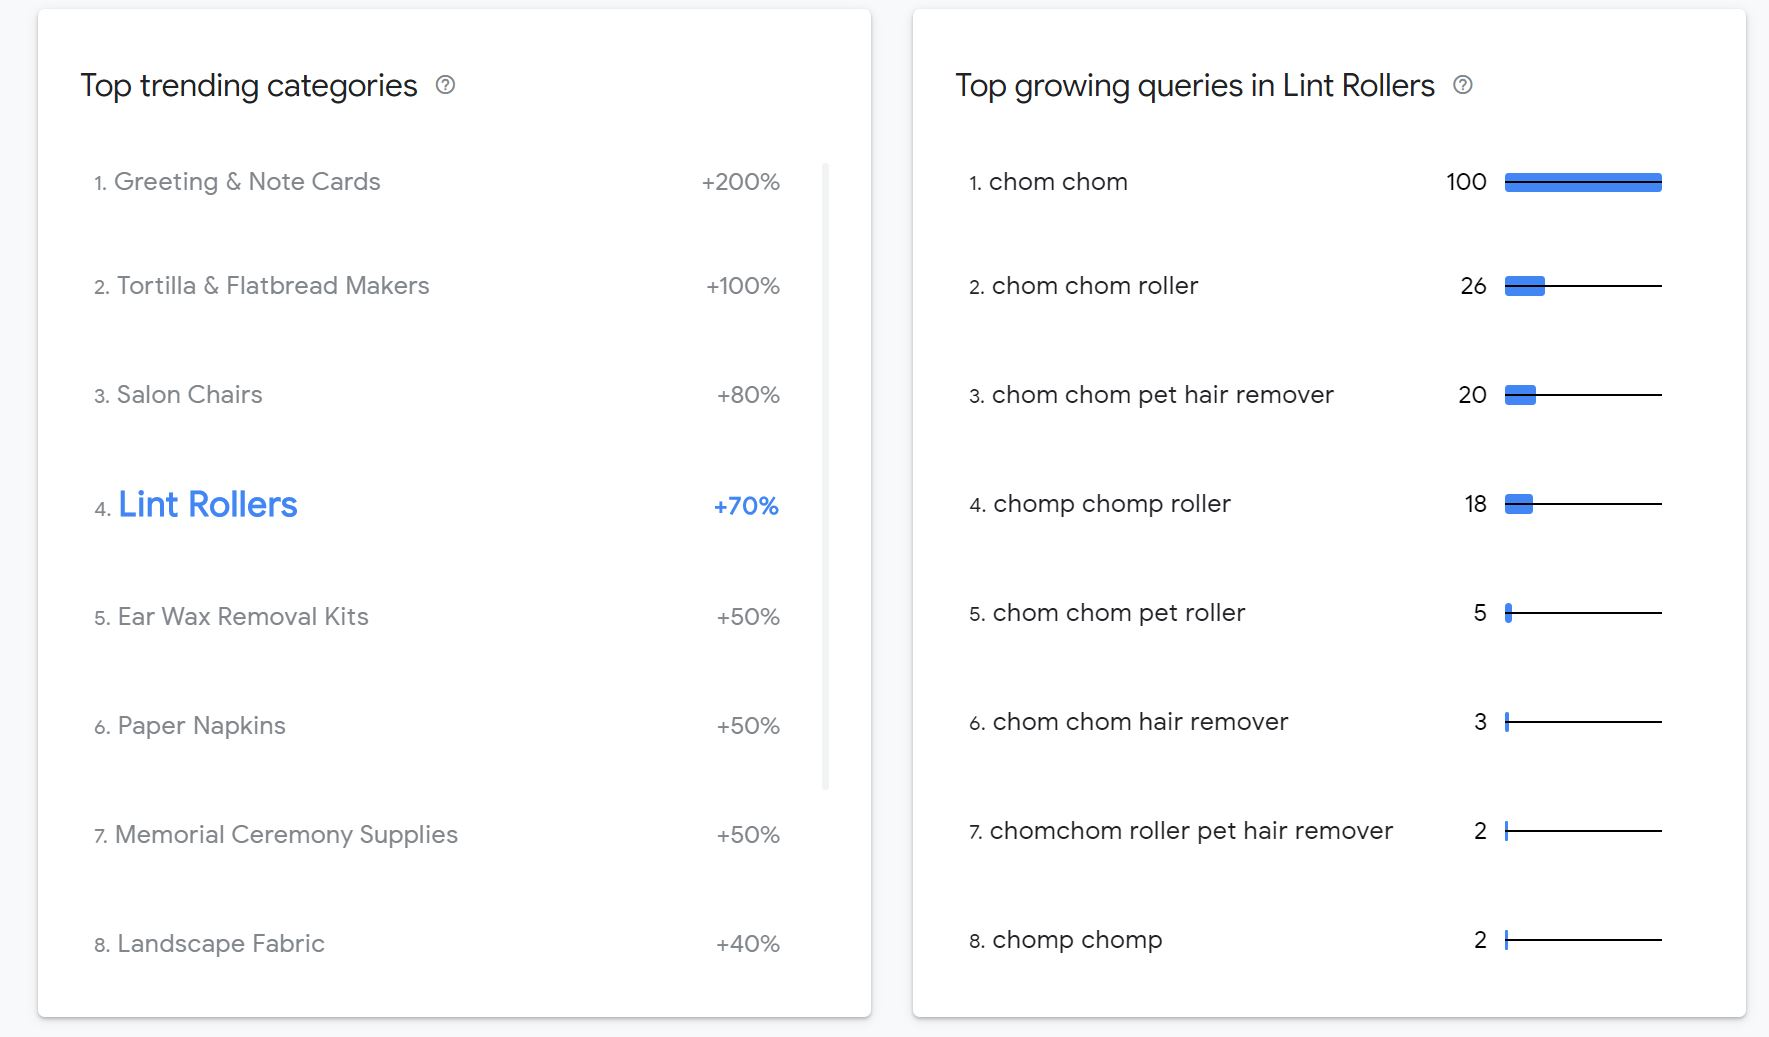 A list of the top trending categories in a particular time span, with Lint Rollers highlighted. On the right is a list of the top growing queries in this category, which are mostly variations on 'chom chom roller'.